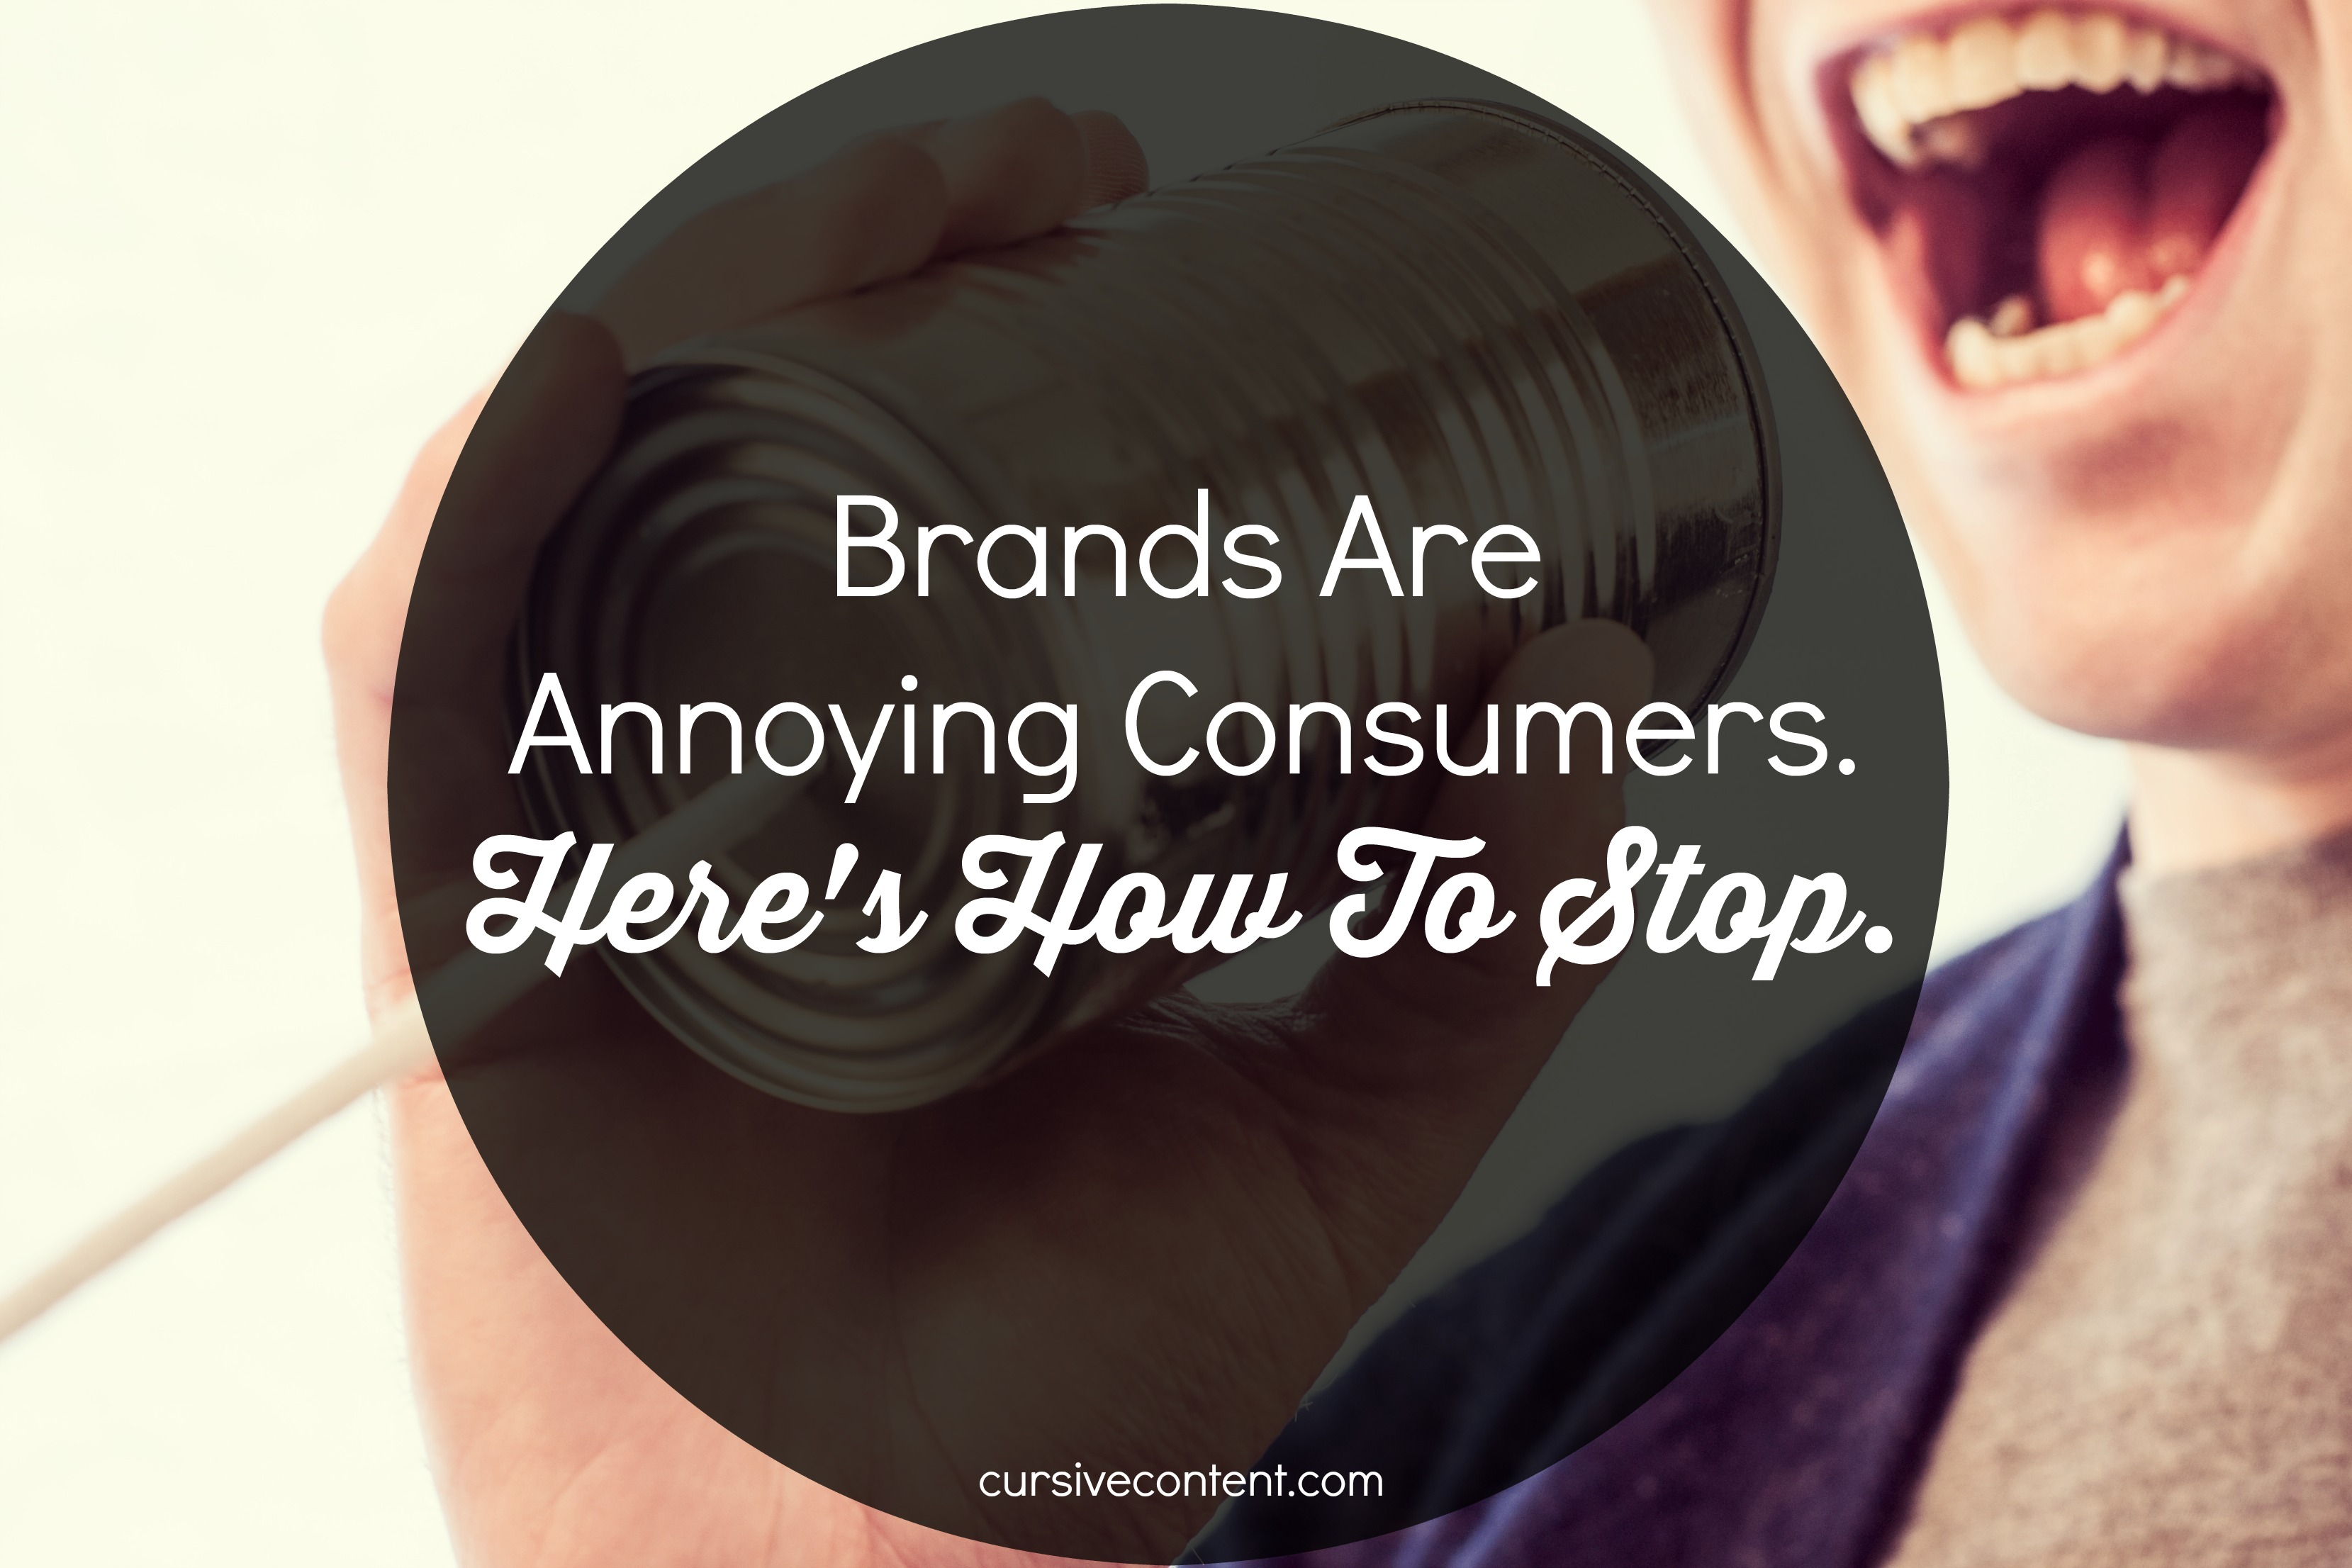 Brands Are Annoying Consumers Here's How To Stop